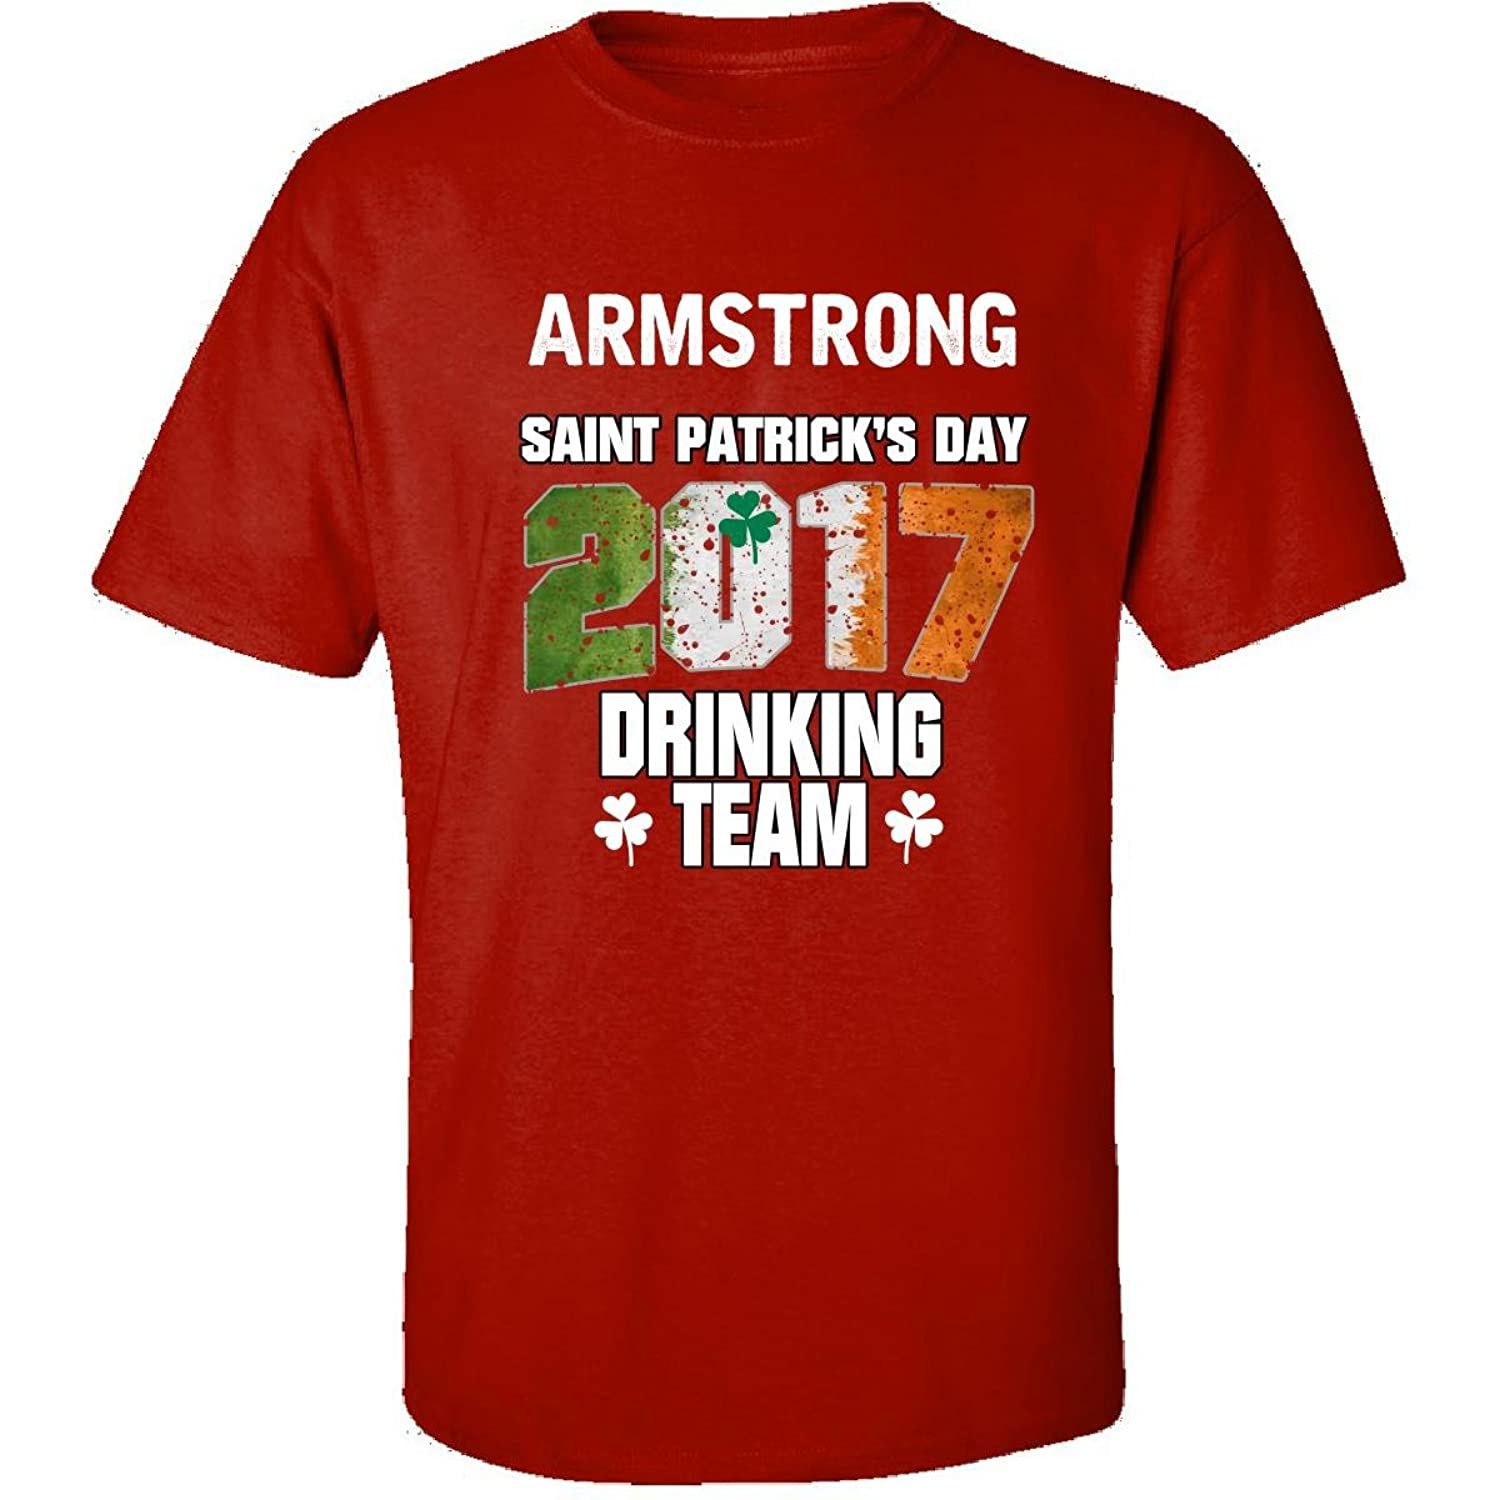 Armstrong Irish St Patricks Day 2017 Drinking Team - Adult Shirt